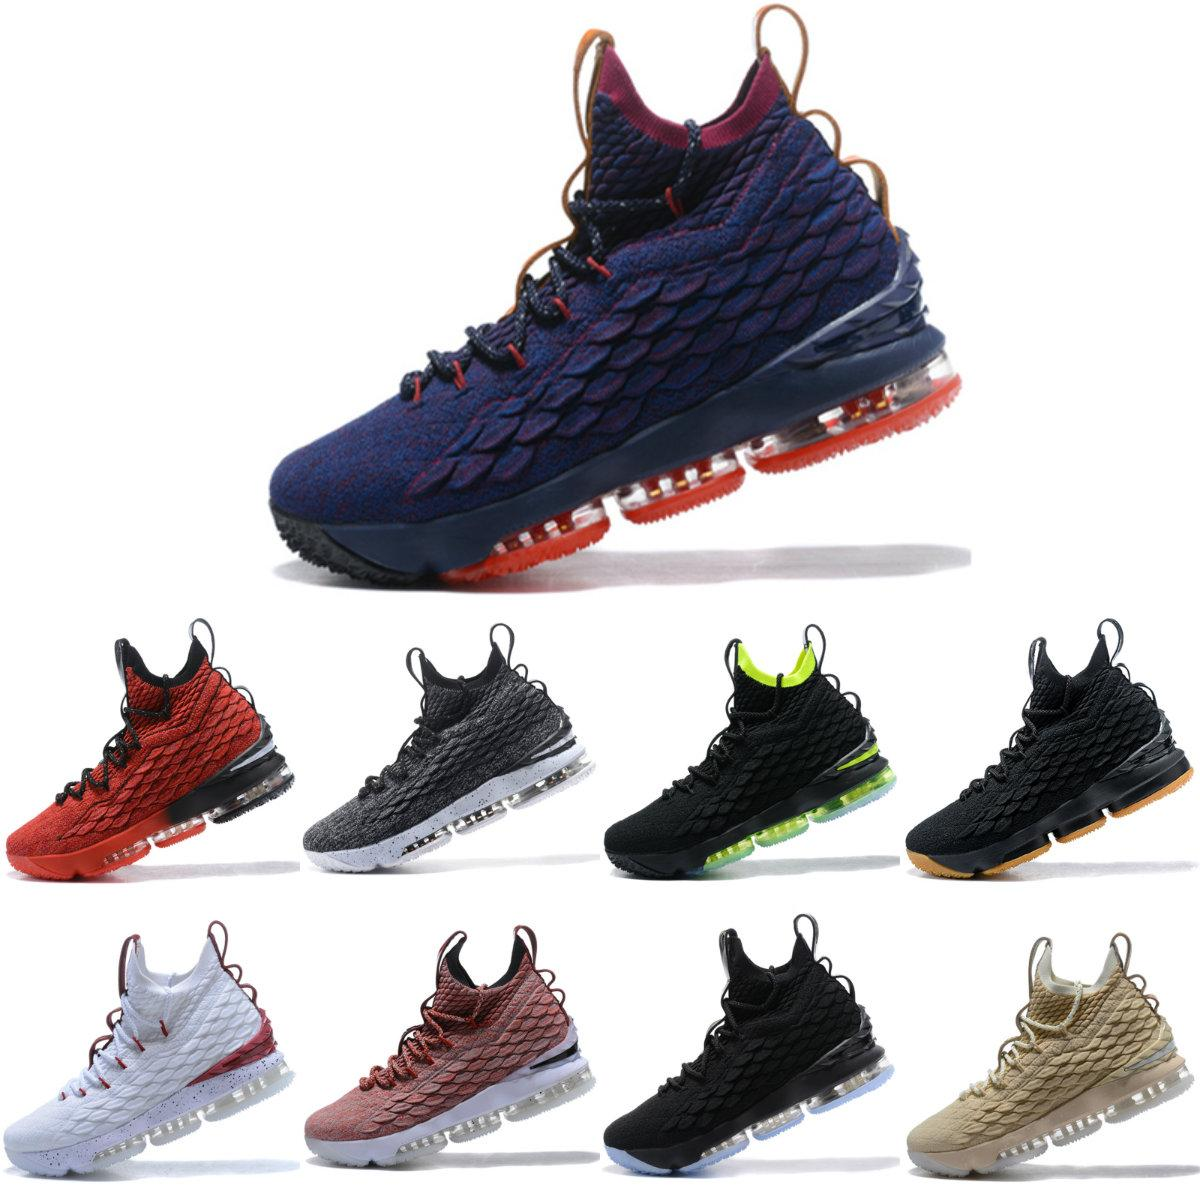 c35c5c44dd80 Youth Lebron 15 City Edition 15s Basketball Shoes James 15 Men Running  Sports Shoes White Black Size US7 US12 Whith Box Best Sneakers For Kids  Running ...